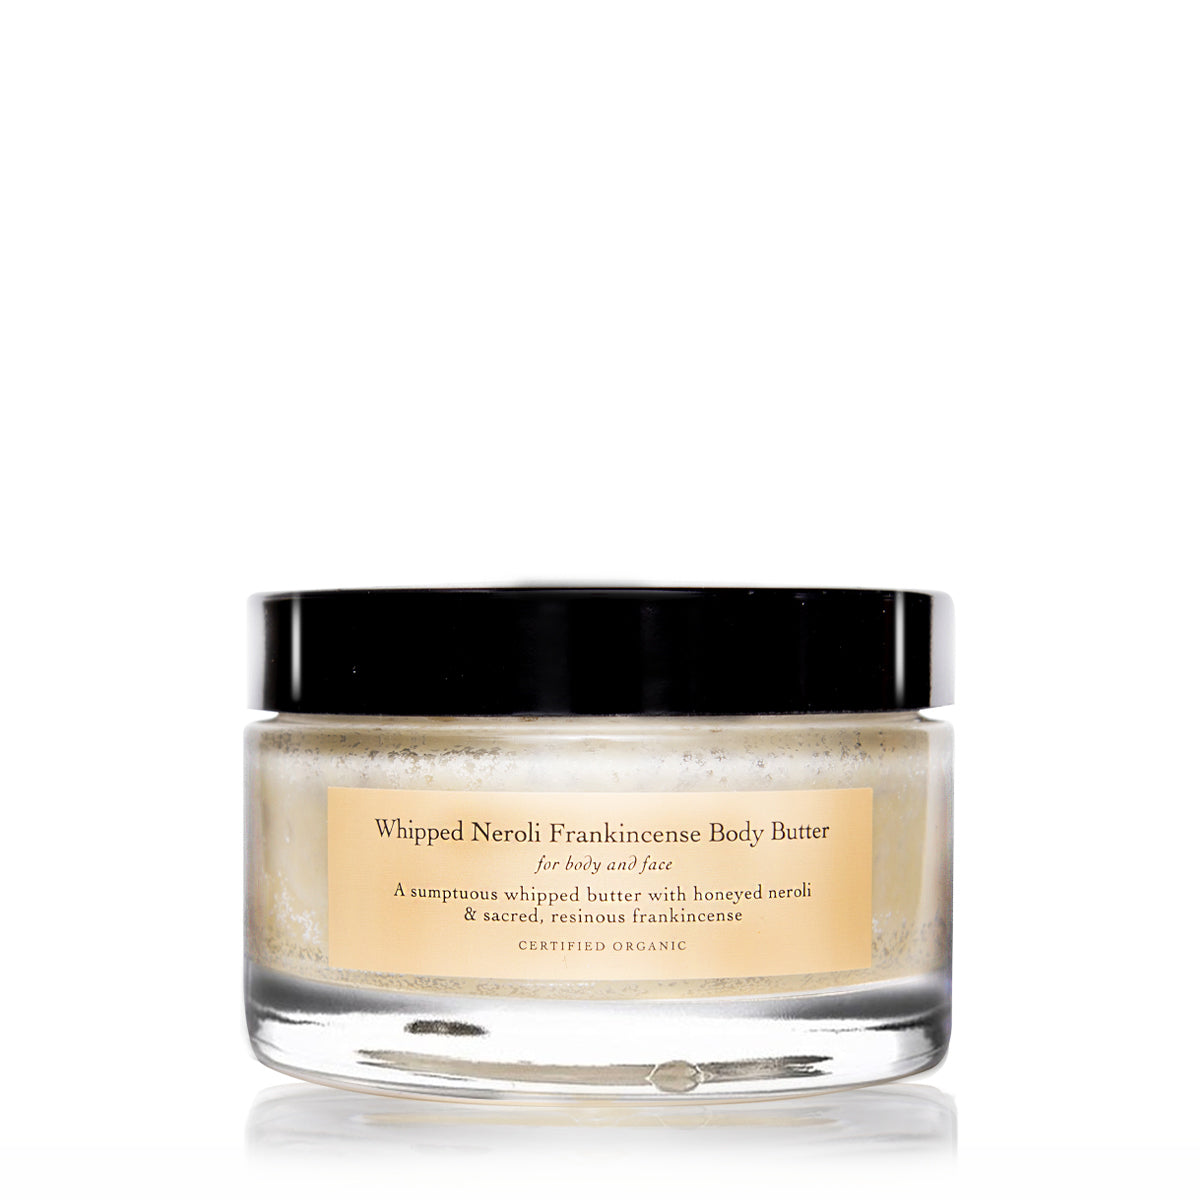 Whipped Neroli Frankincense Body Butter